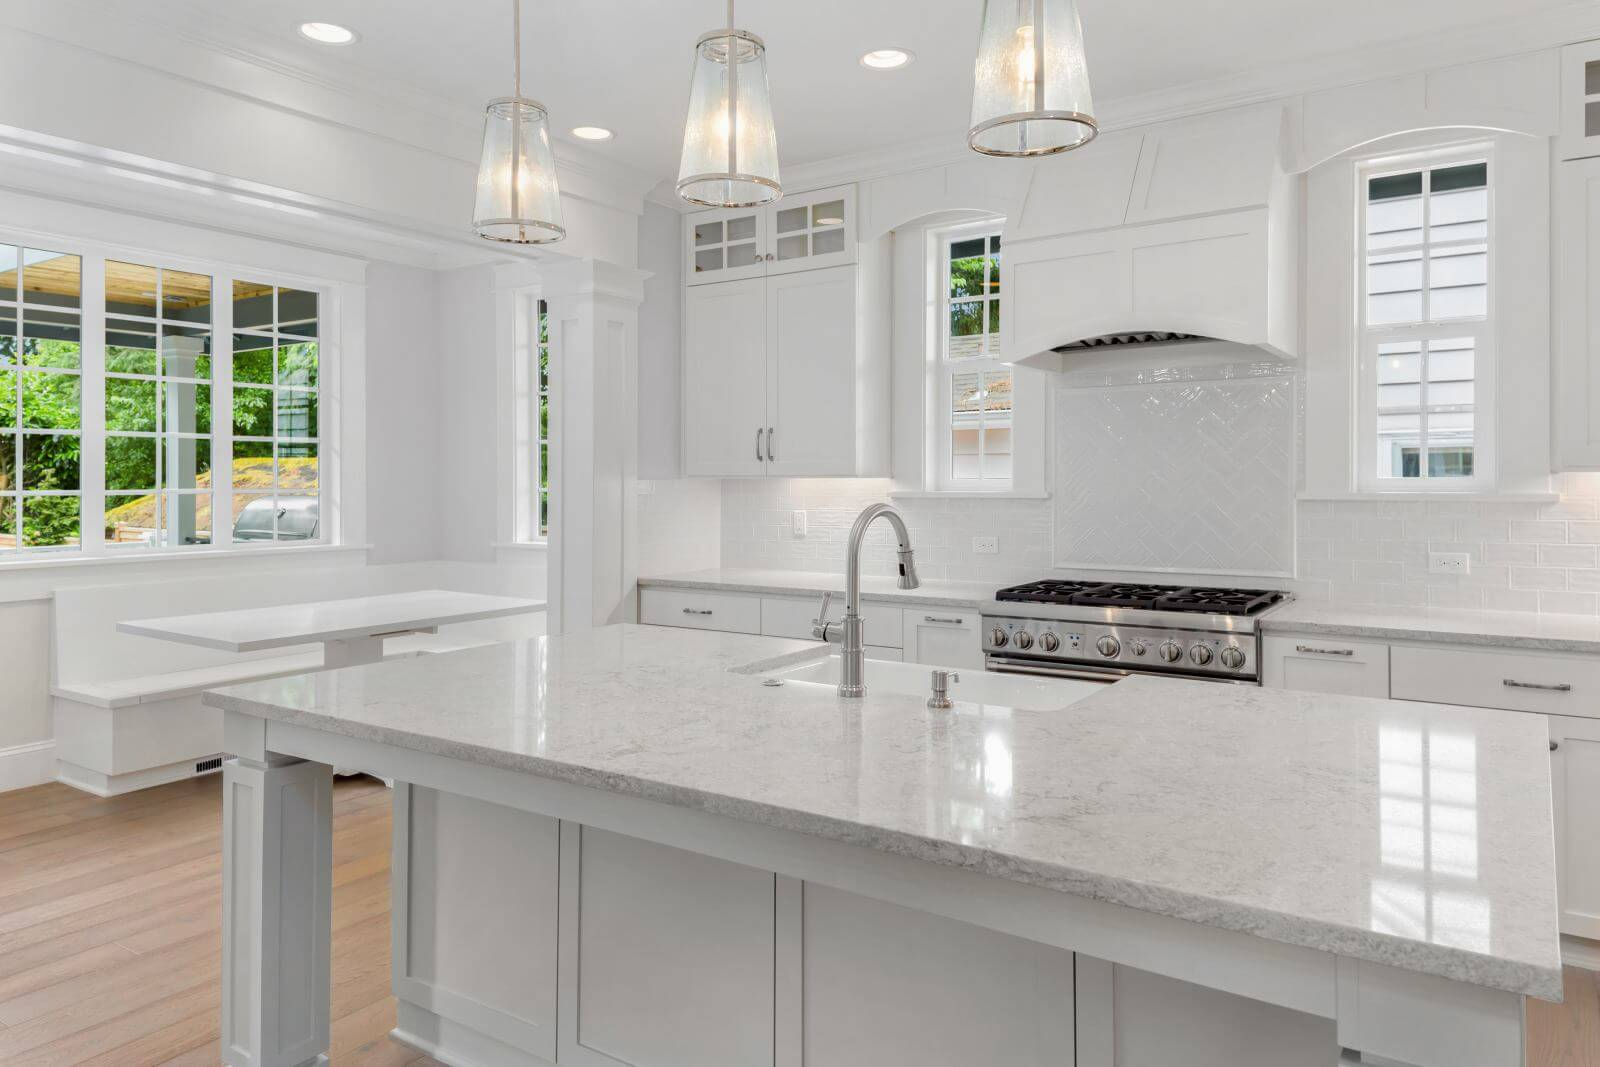 Beautiful White Kitchen in New Luxury Home with Hardwood Floors, Island, and Eating Nook